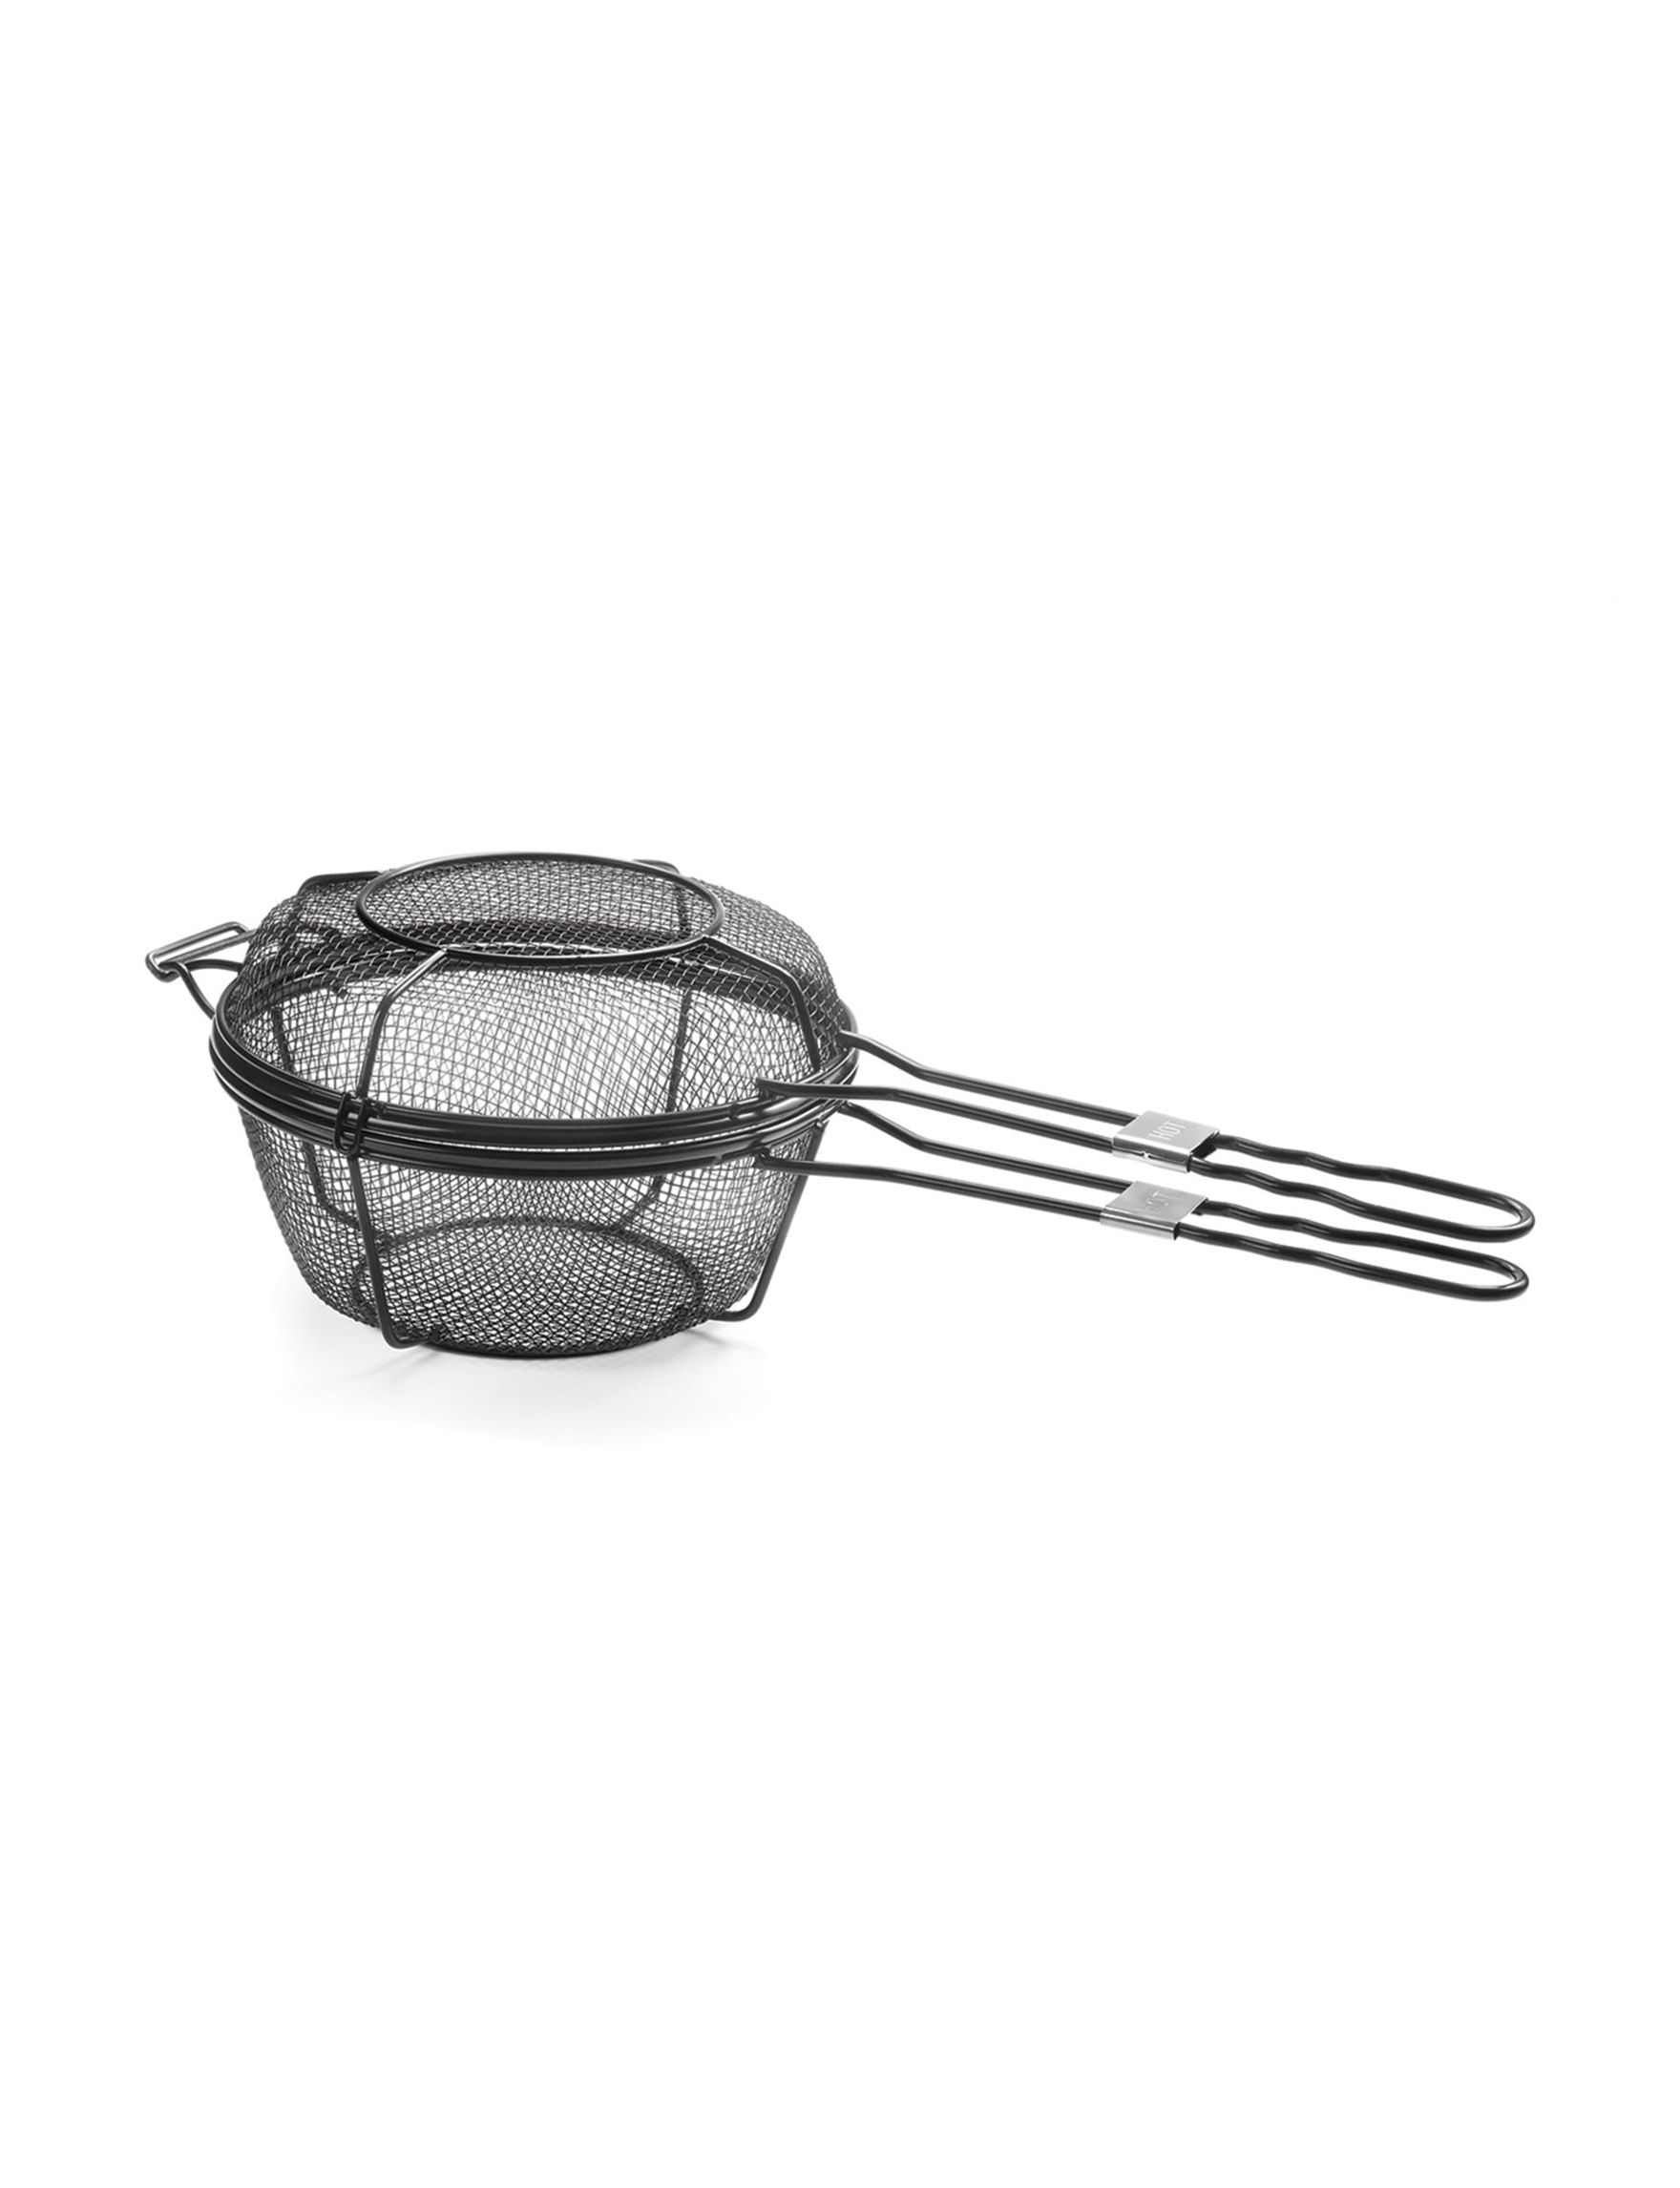 Outset Black Grills & Grill Accessories